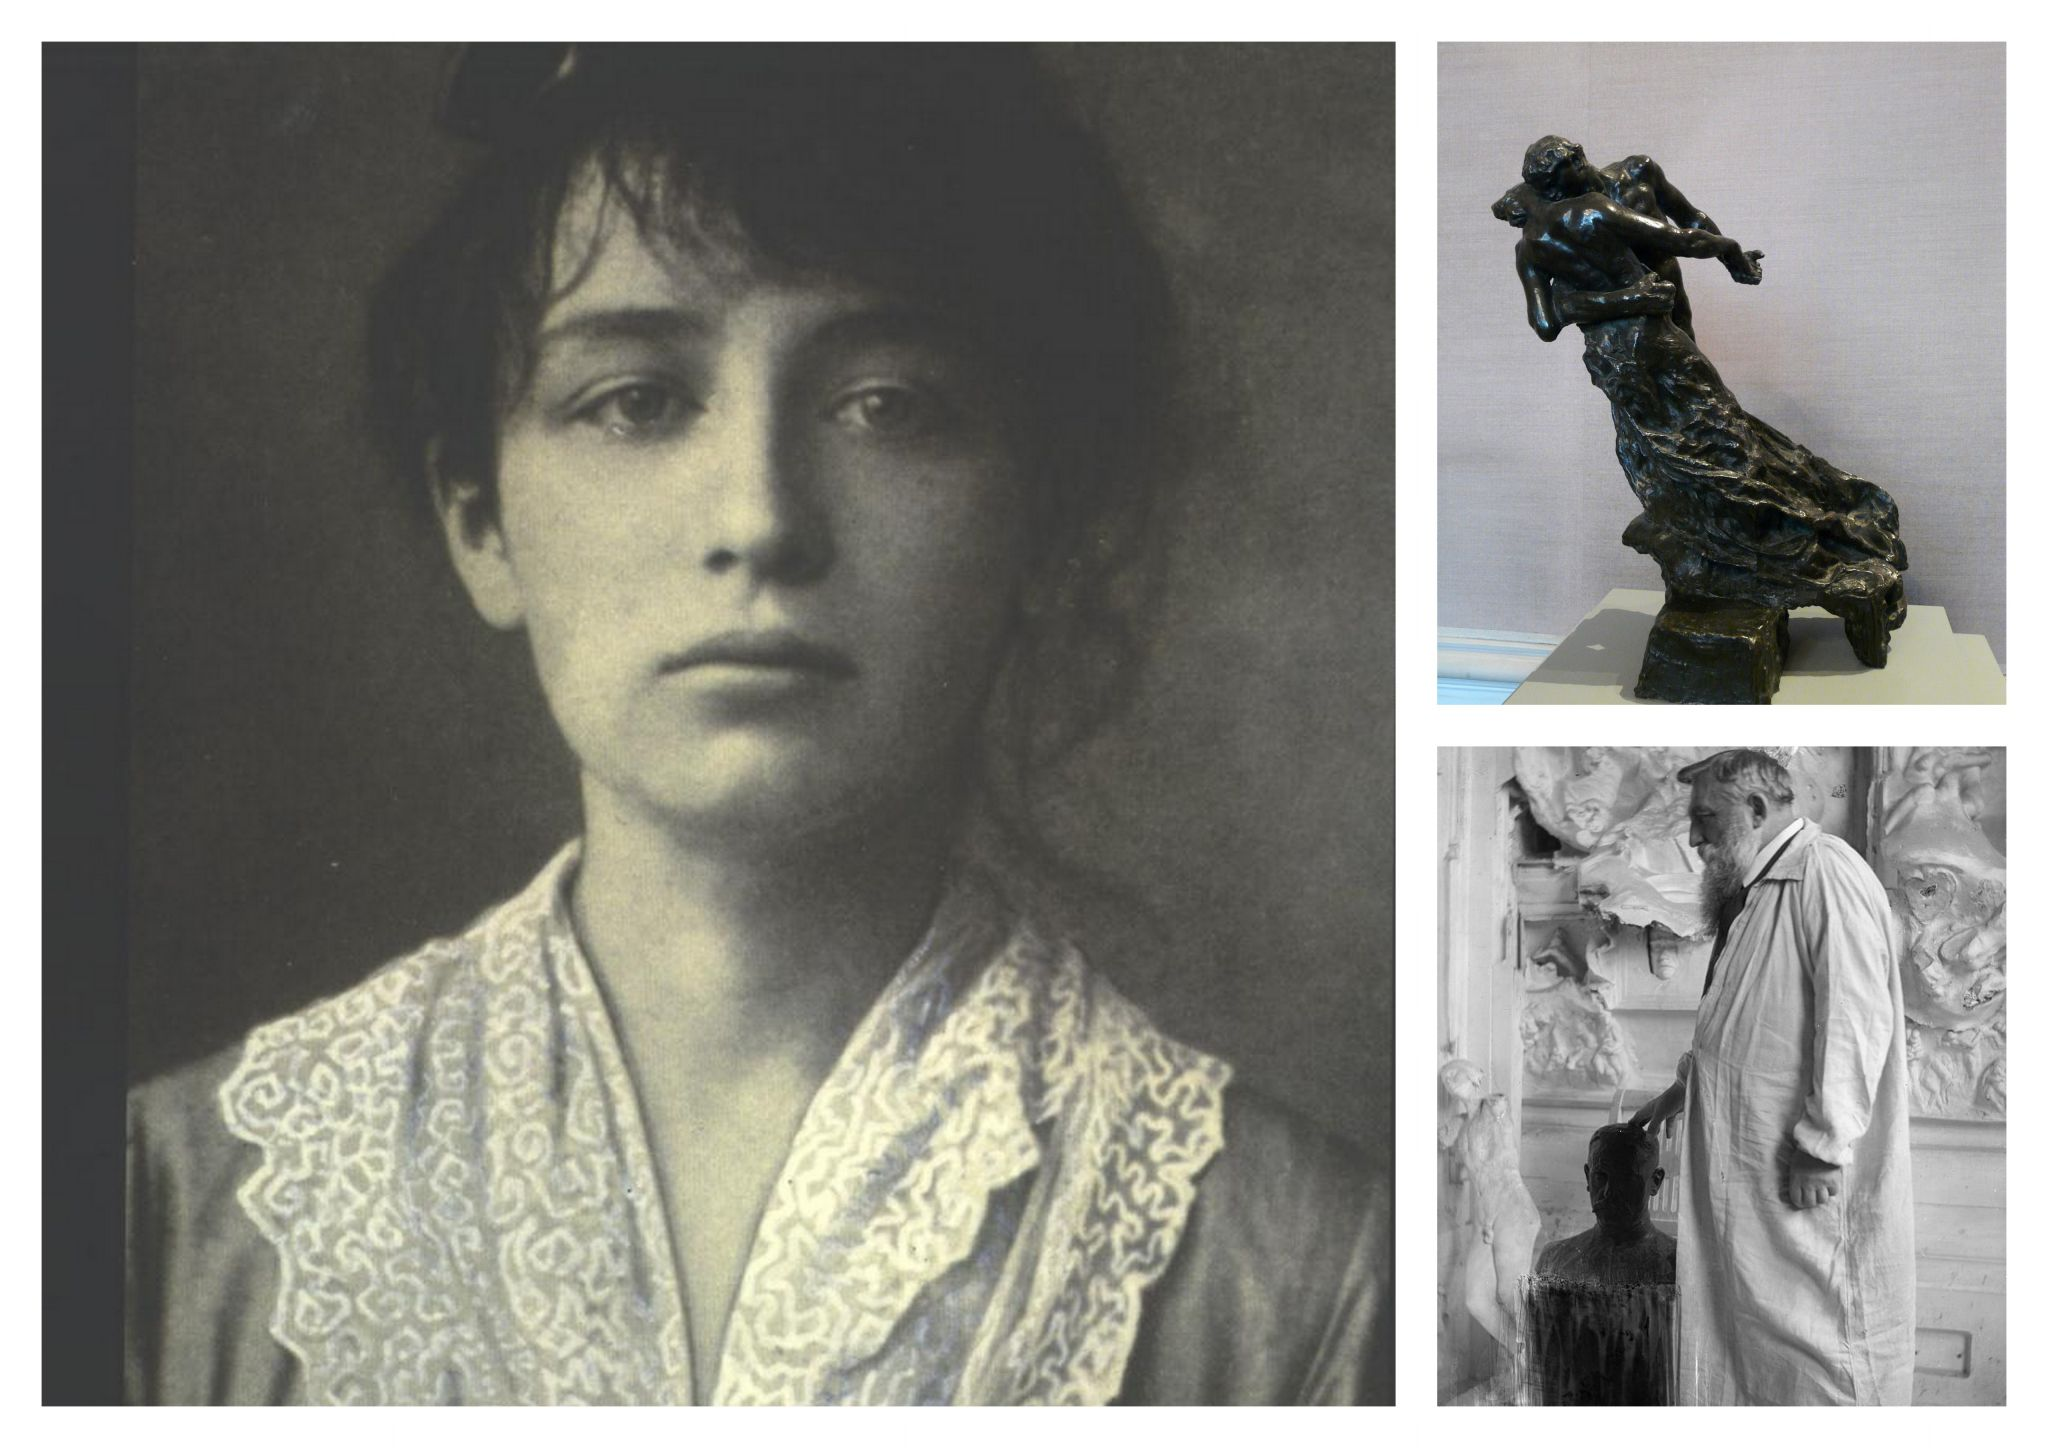 auguste rodin camille claudel relationship advice